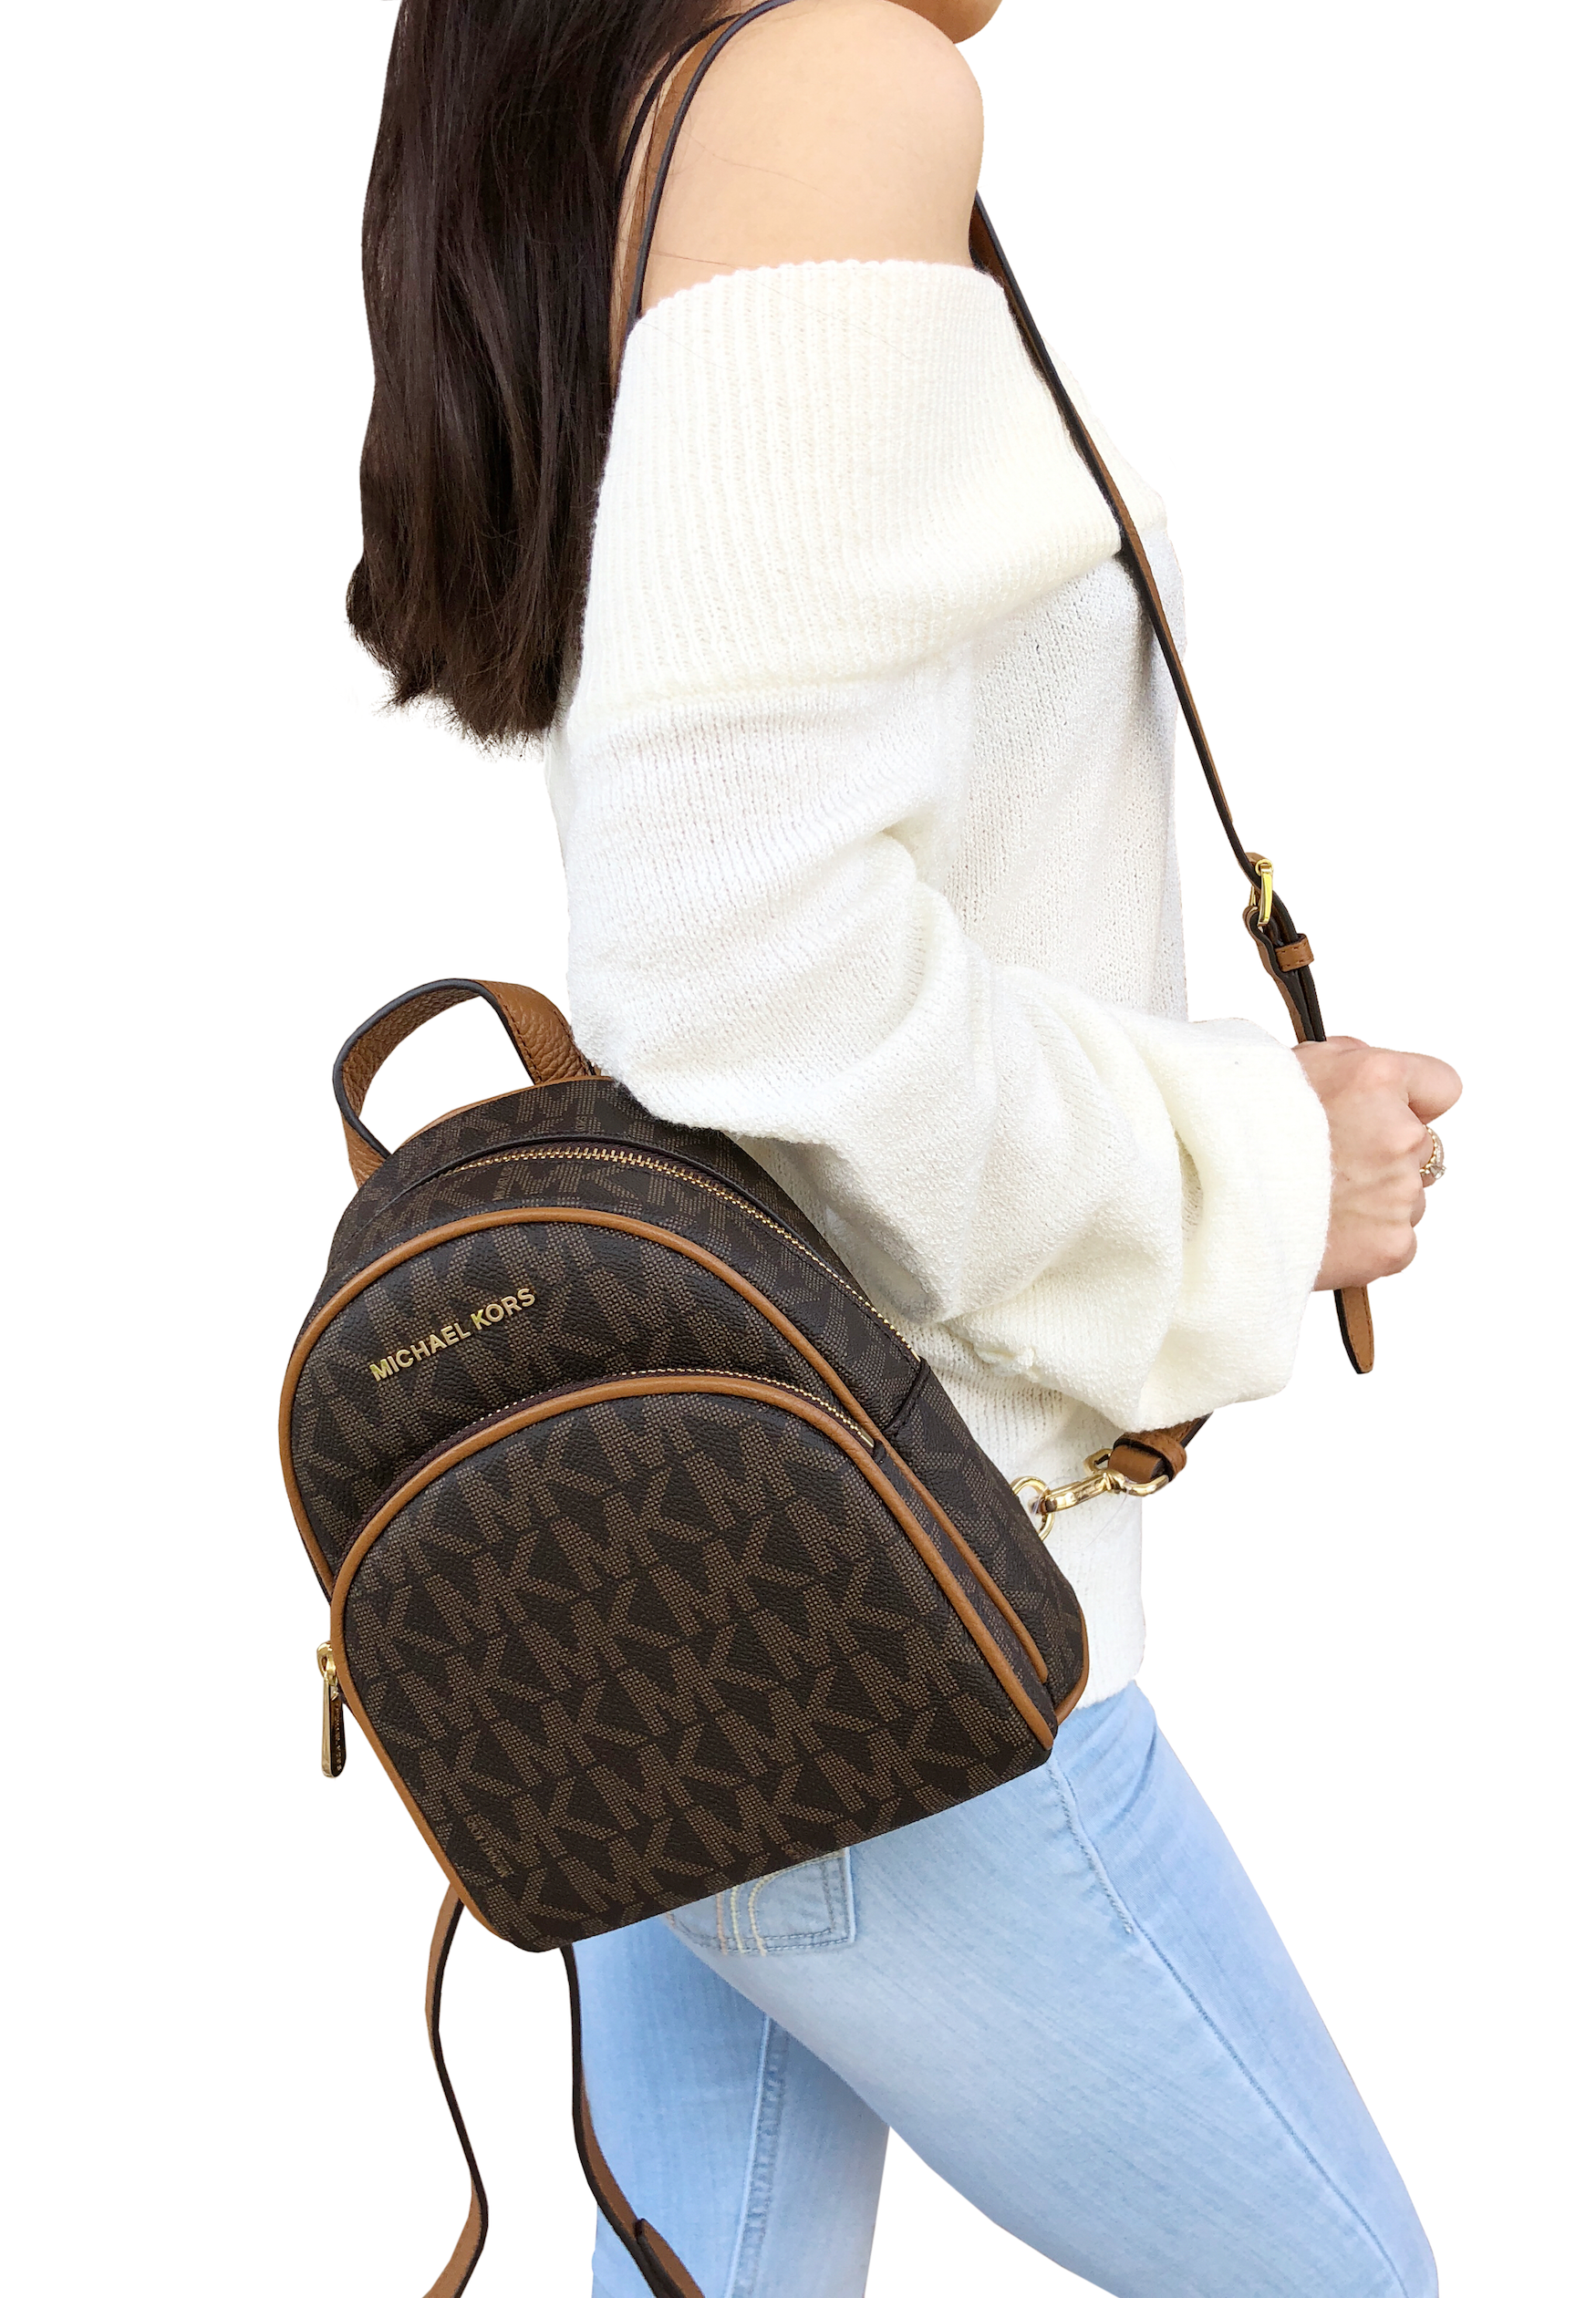 ca45054c8c62 Michael Kors Abbey Mini Backpack Crossbody Brown MK Signature Acorn Extra  Small